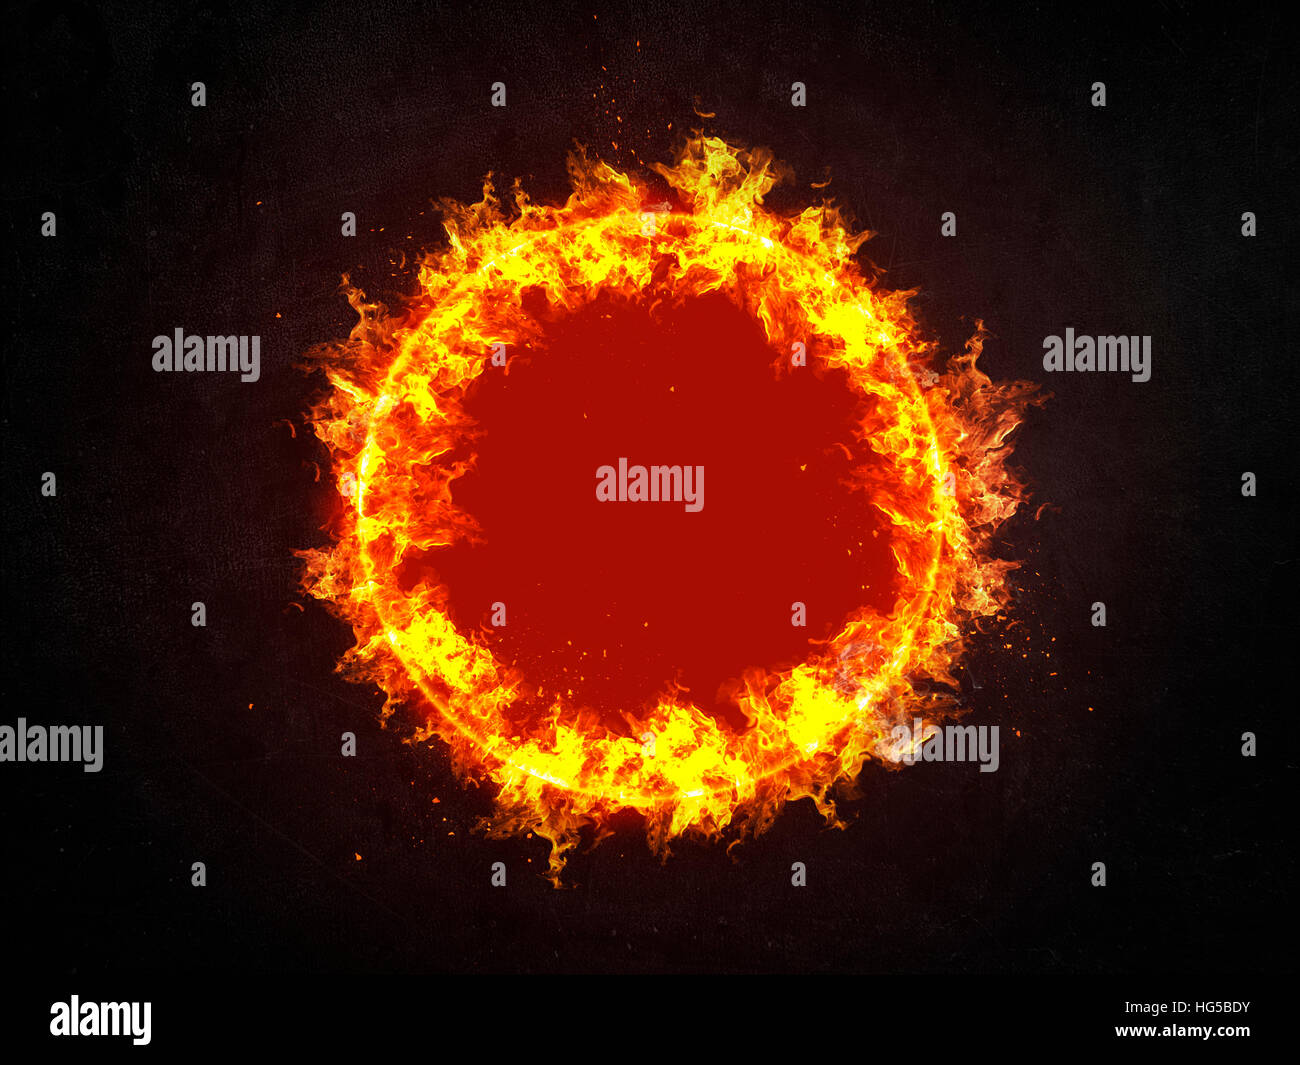 Burning ring of fire with red hot central copy space and showering sparks centered over a dark background - Stock Image